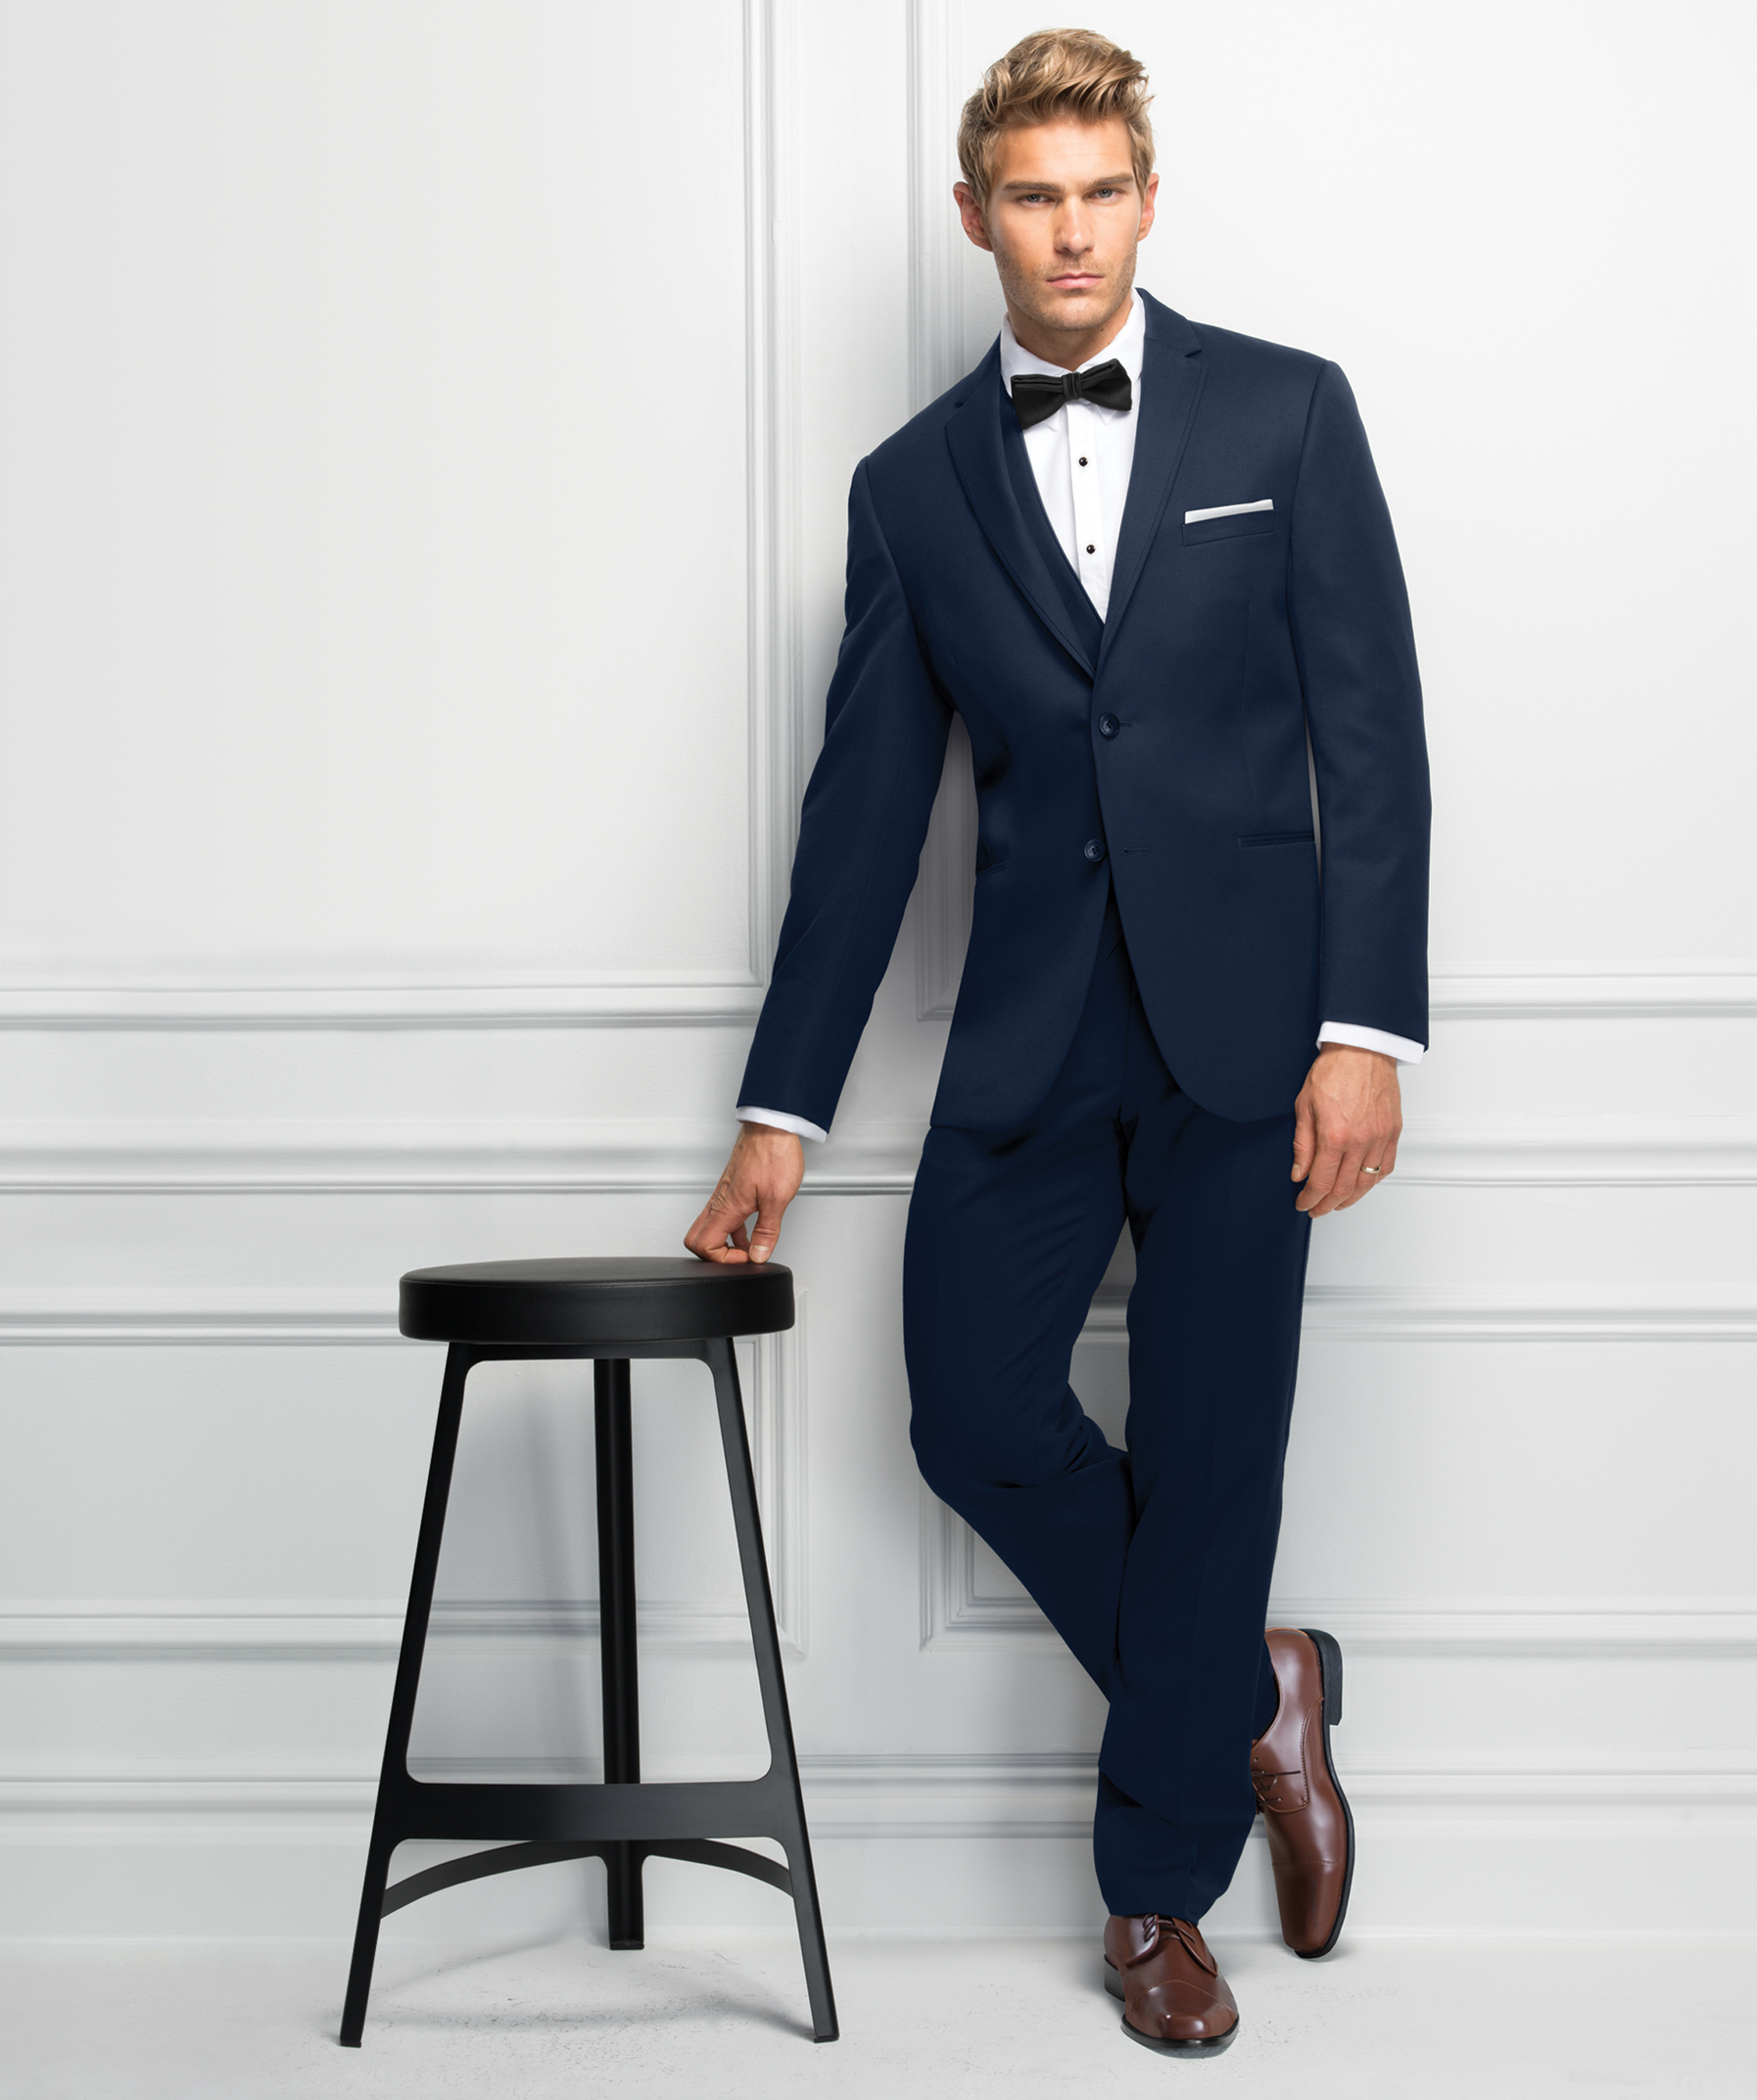 Ultra Slim Navy Sterling Suit by Michael Kors